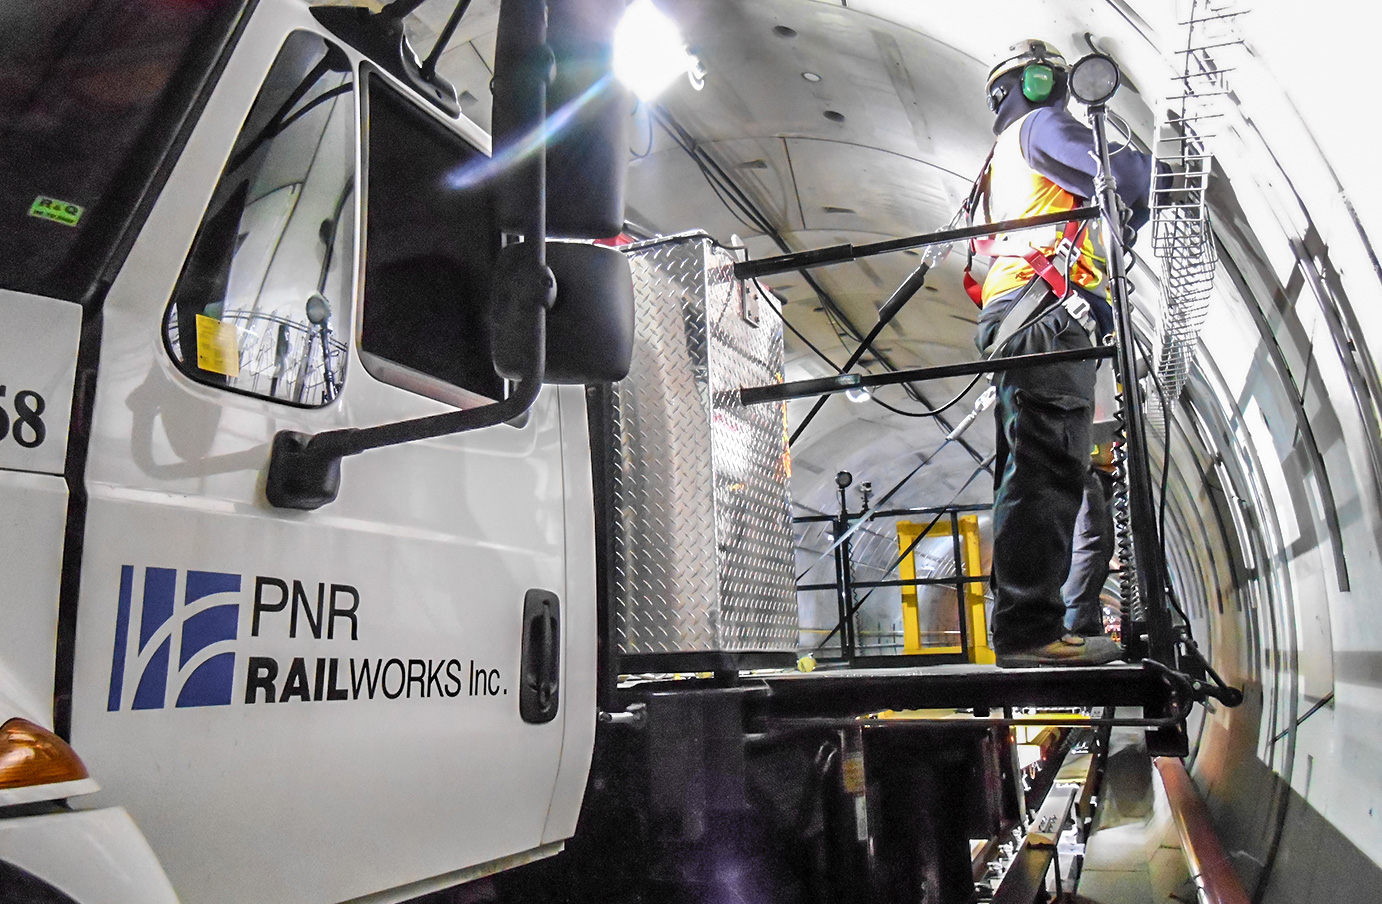 PNR Railworks > Modules (previous revision)